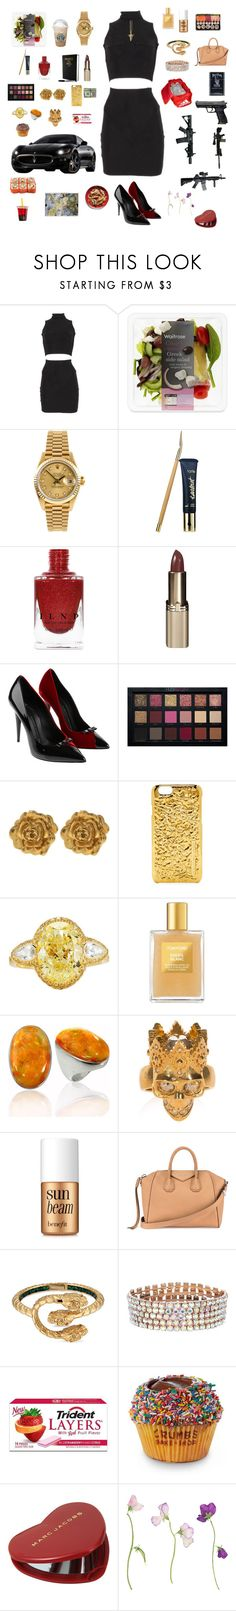 """""""Untitled #334"""" by liazpanda ❤ liked on Polyvore featuring Rolex, tarte, L'Oréal Paris, Giuseppe Zanotti, Huda Beauty, Liberty, Marc by Marc Jacobs, Tom Ford, BillyTheTree and Alexander McQueen"""